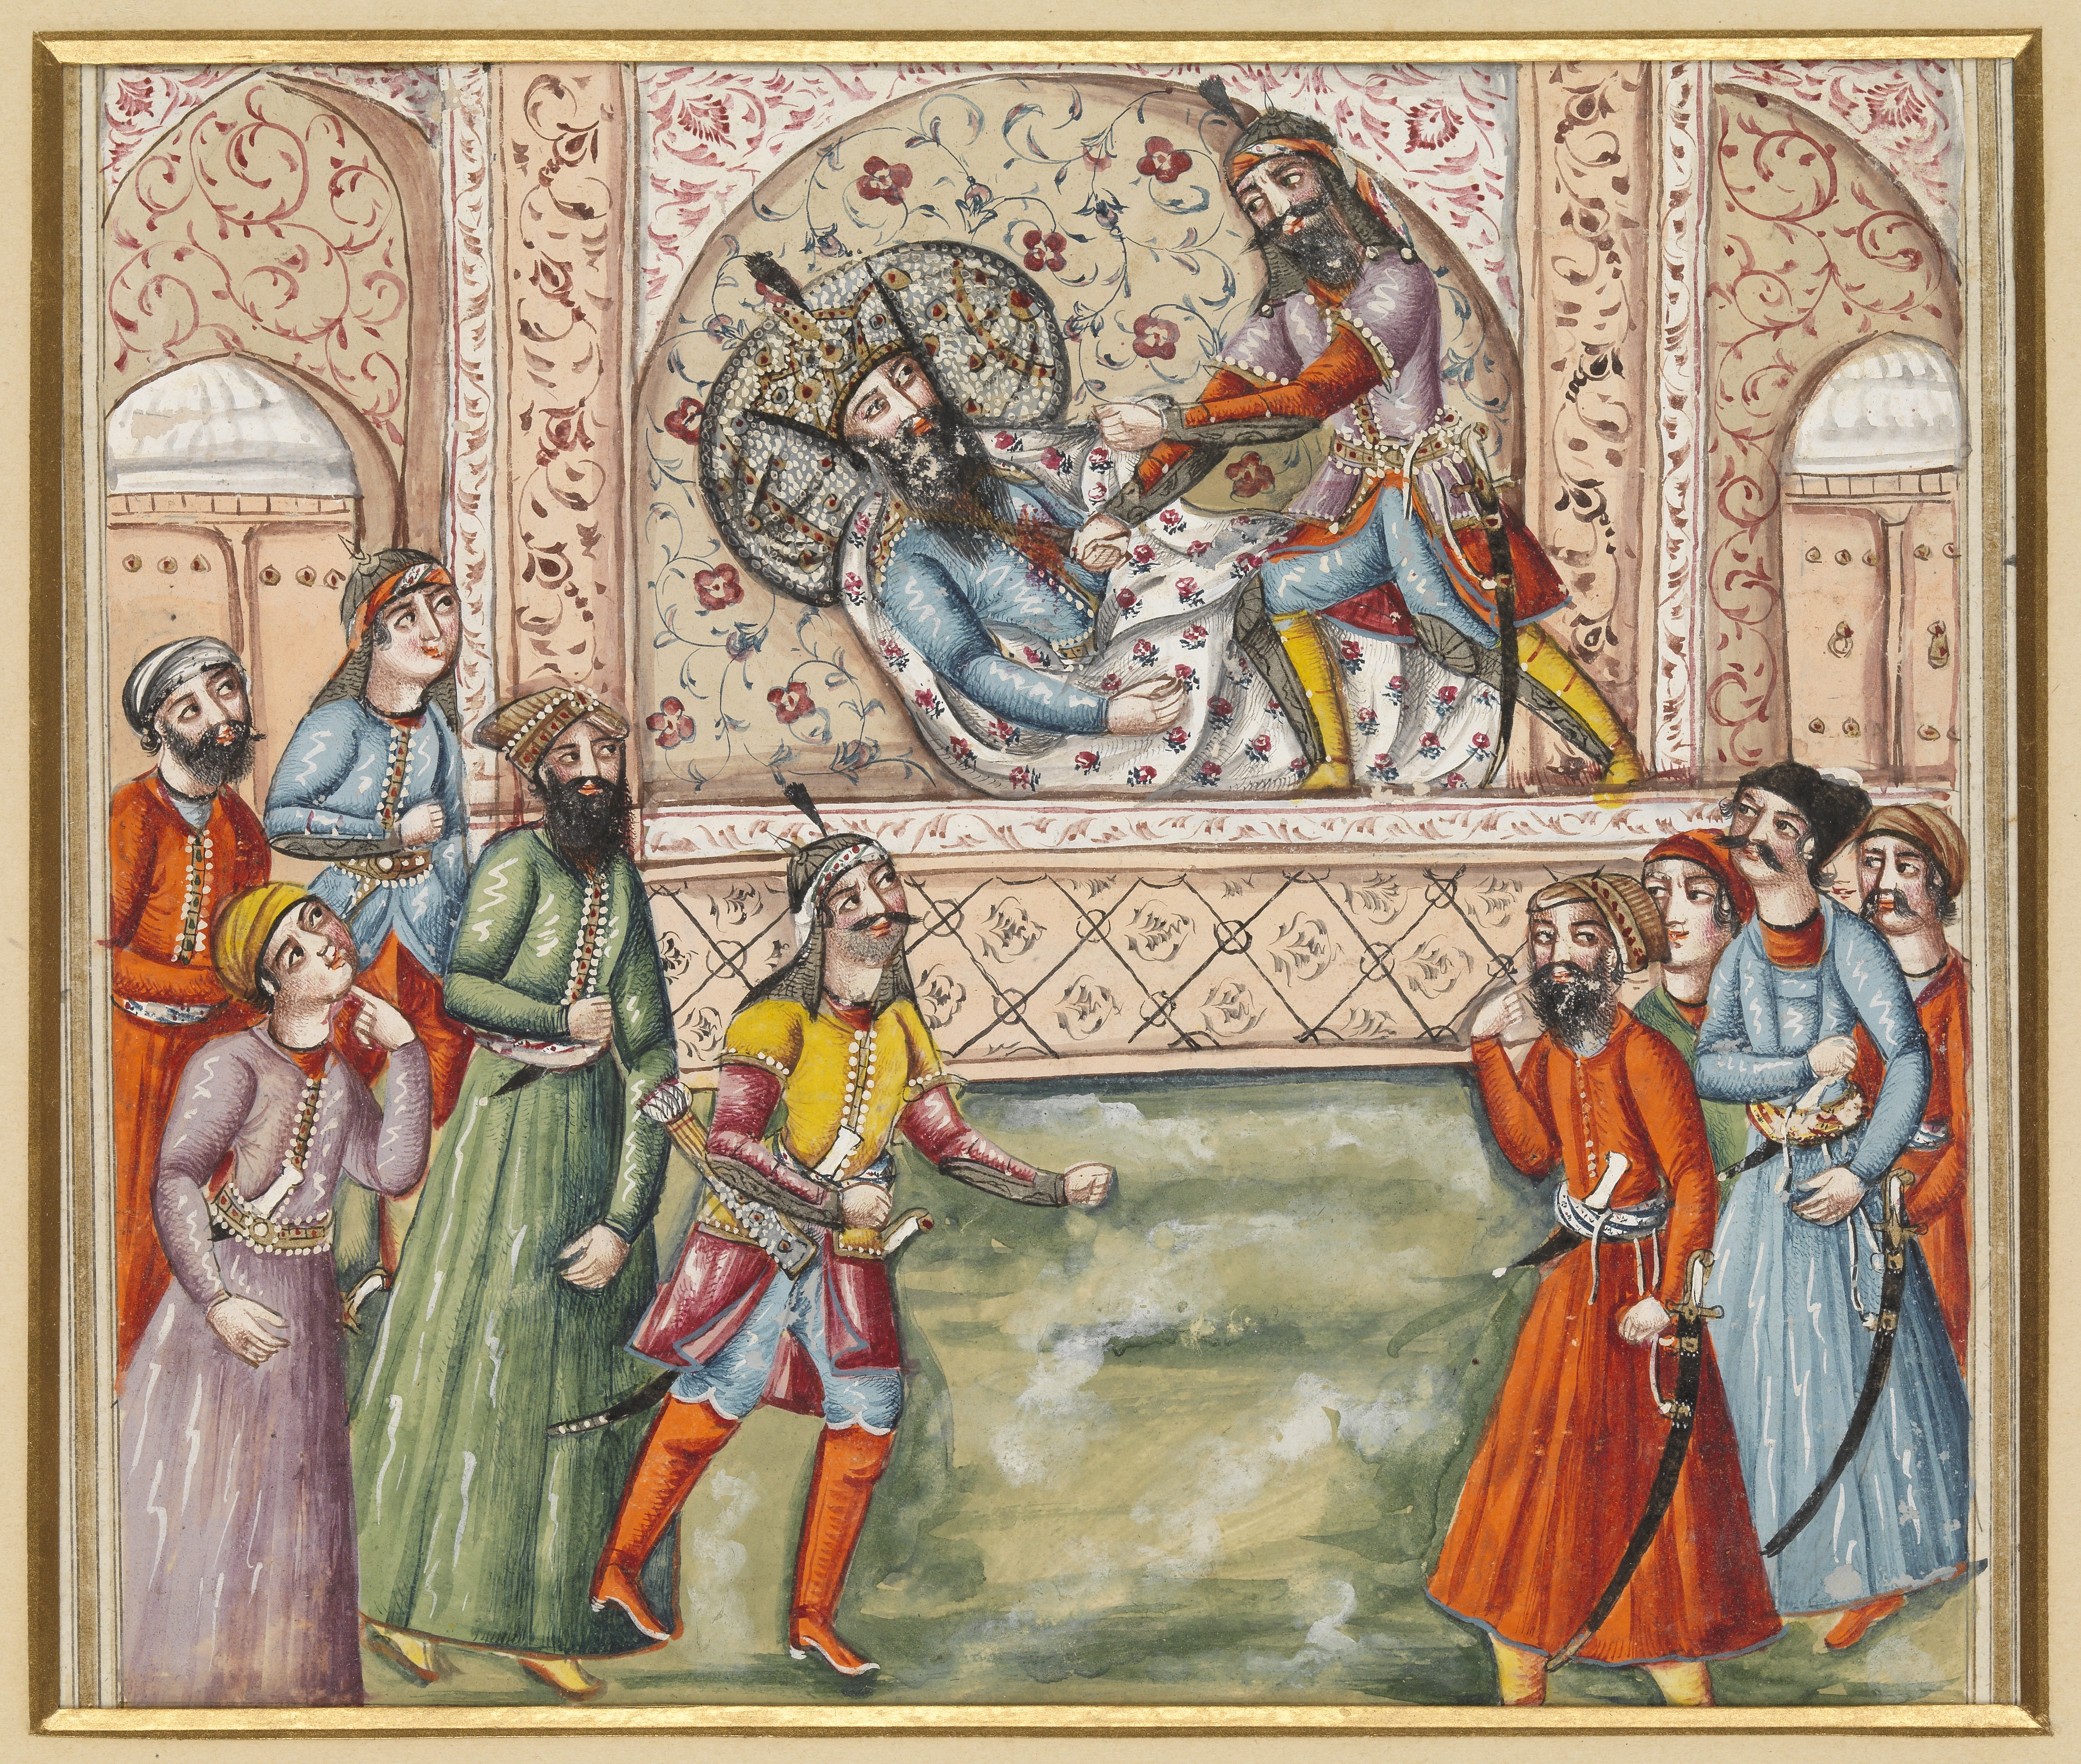 Scene from the Shahnameh. Afrasiyab (standing figure) executes Nauzar (lying down). [[Wellcome Library